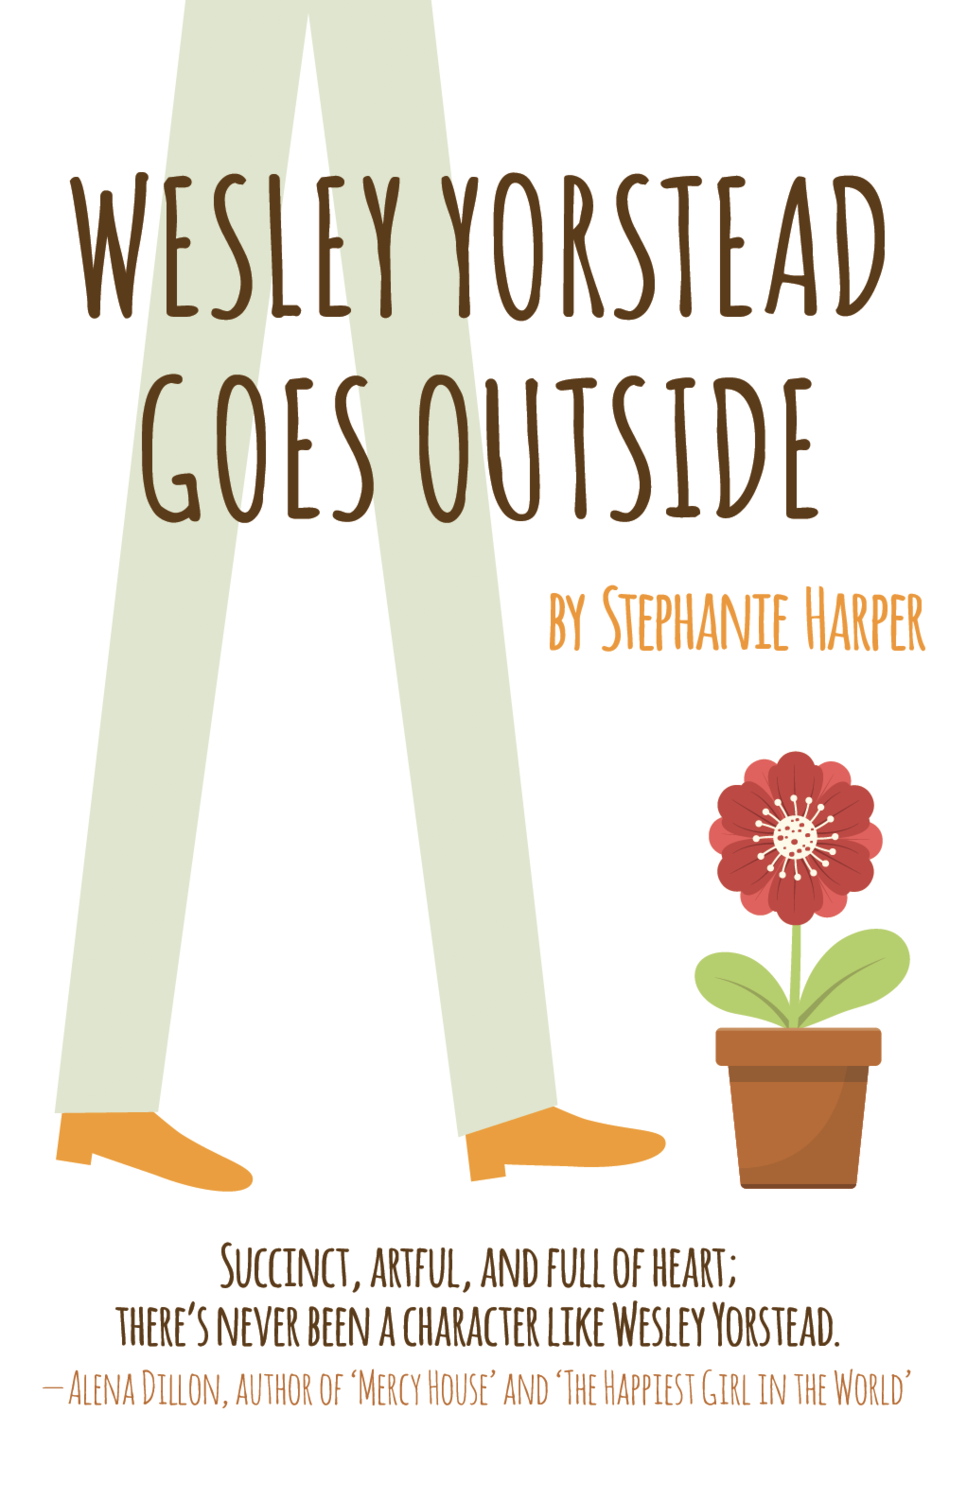 Wesley Yorstead Goes Outside, by Stephanie Harper